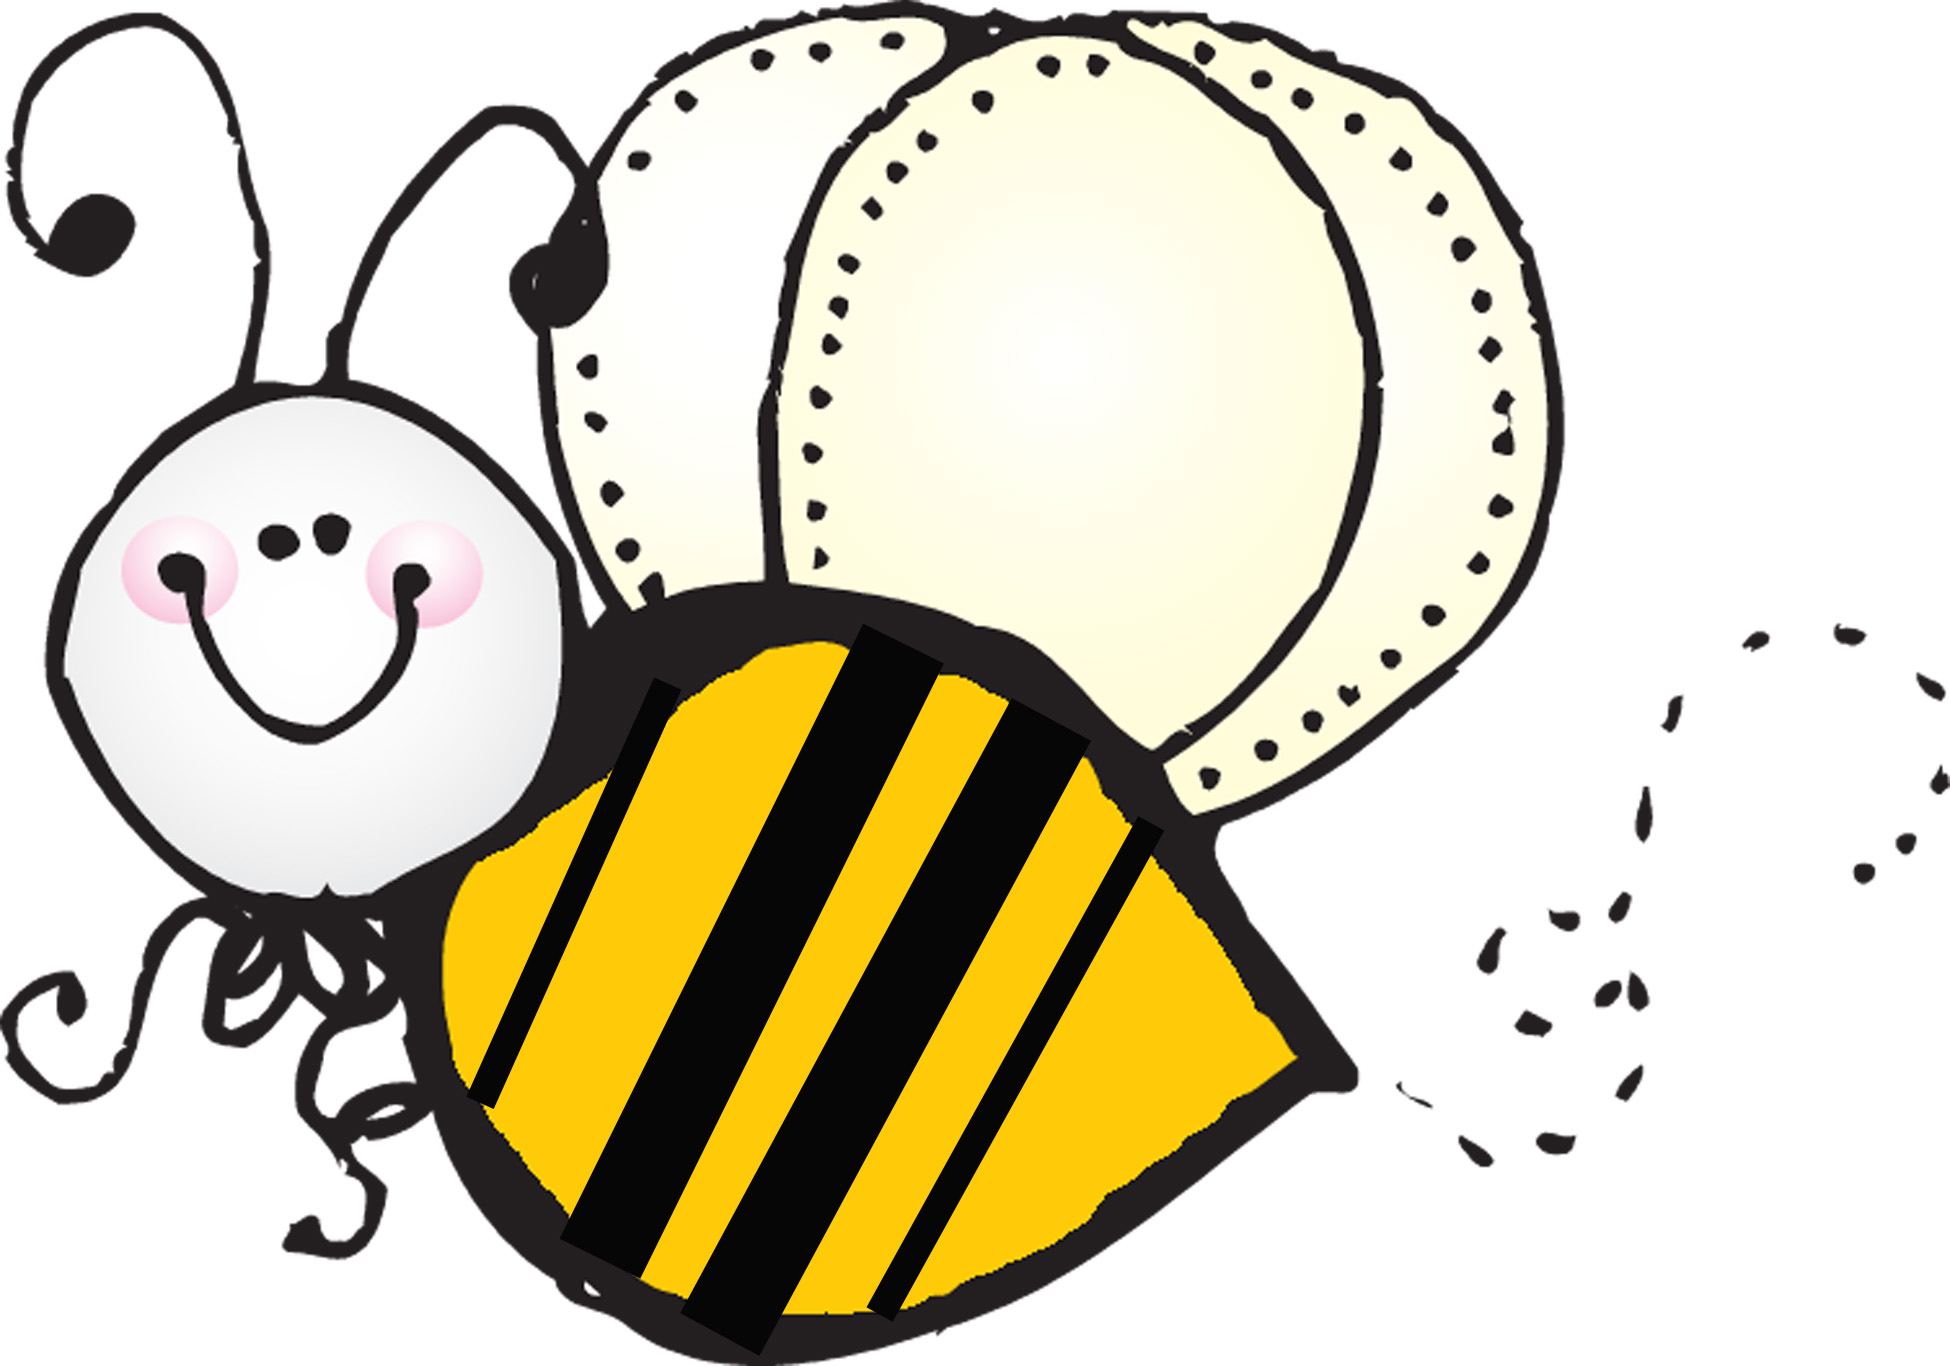 1950x1366 Free Bee Graphics Bumble Bees Clipart Image